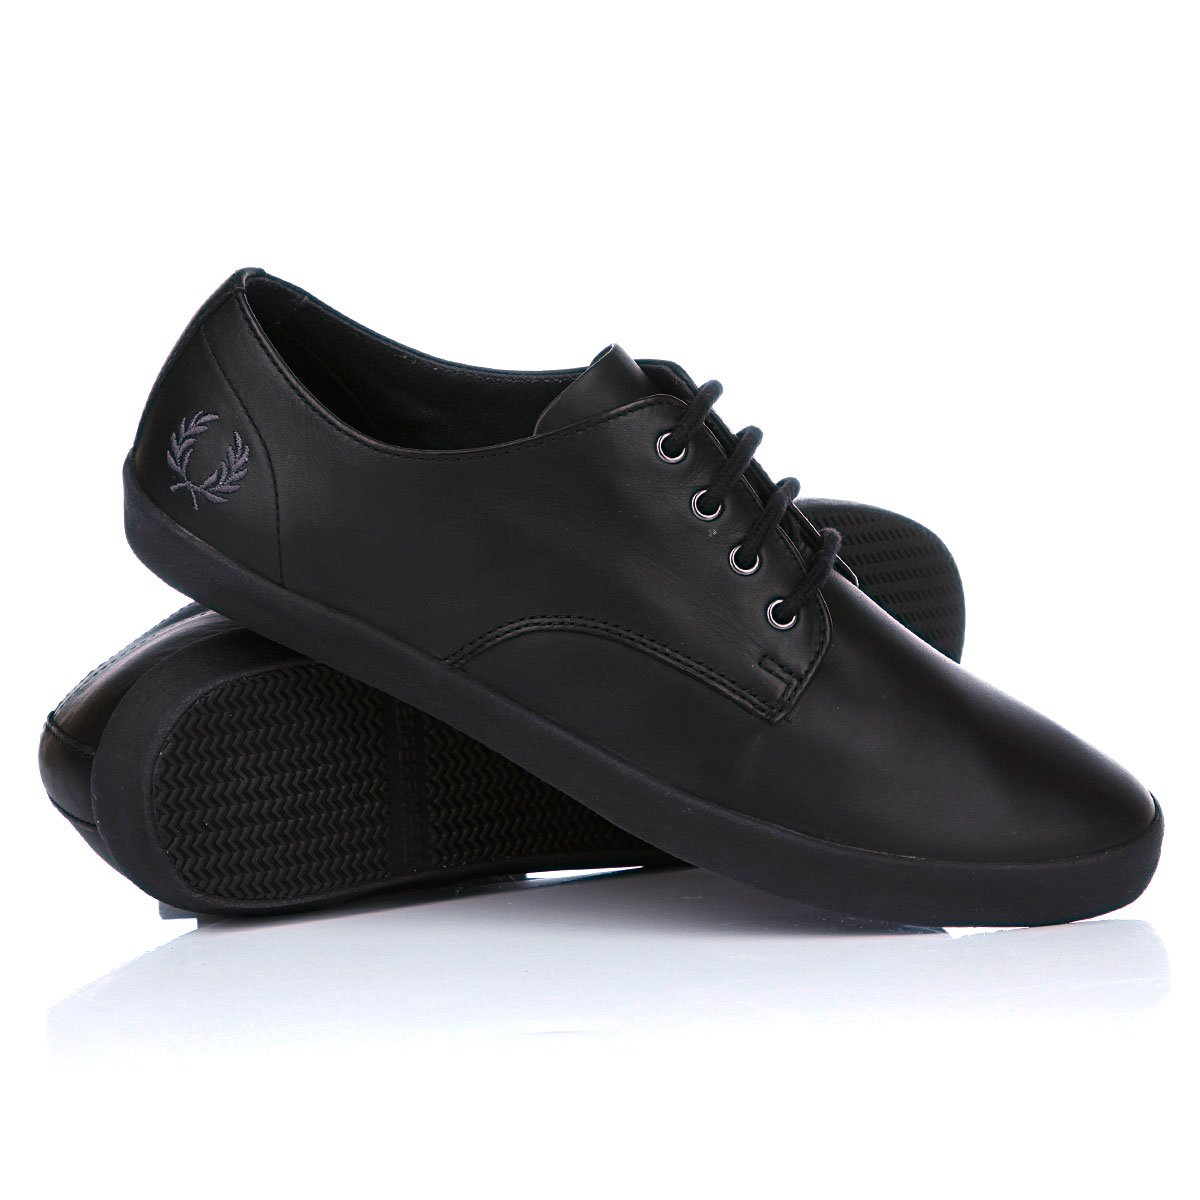 3d7e3410 Купить кеды Fred Perry Foxx Leather Black/Black (111012shoesfred11 ...